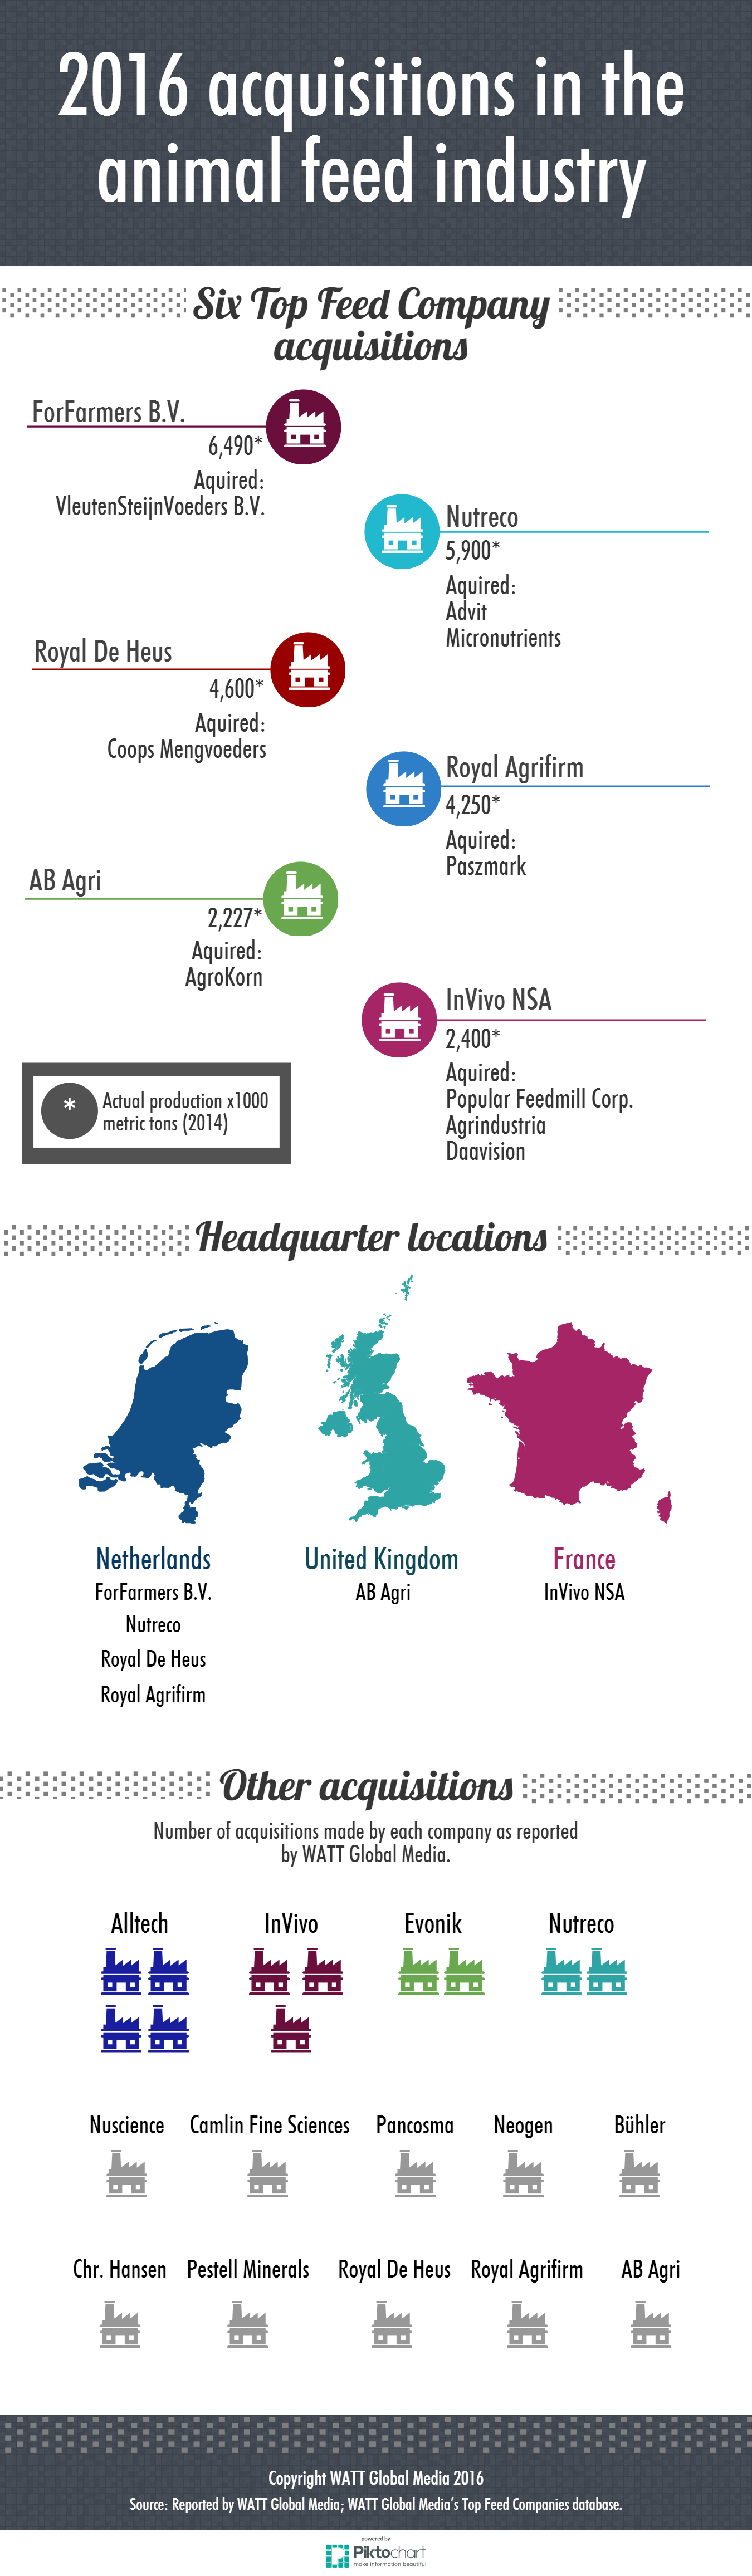 2016-acquisitions-in-the-animal-feed-industry_INFOGRAPHIC